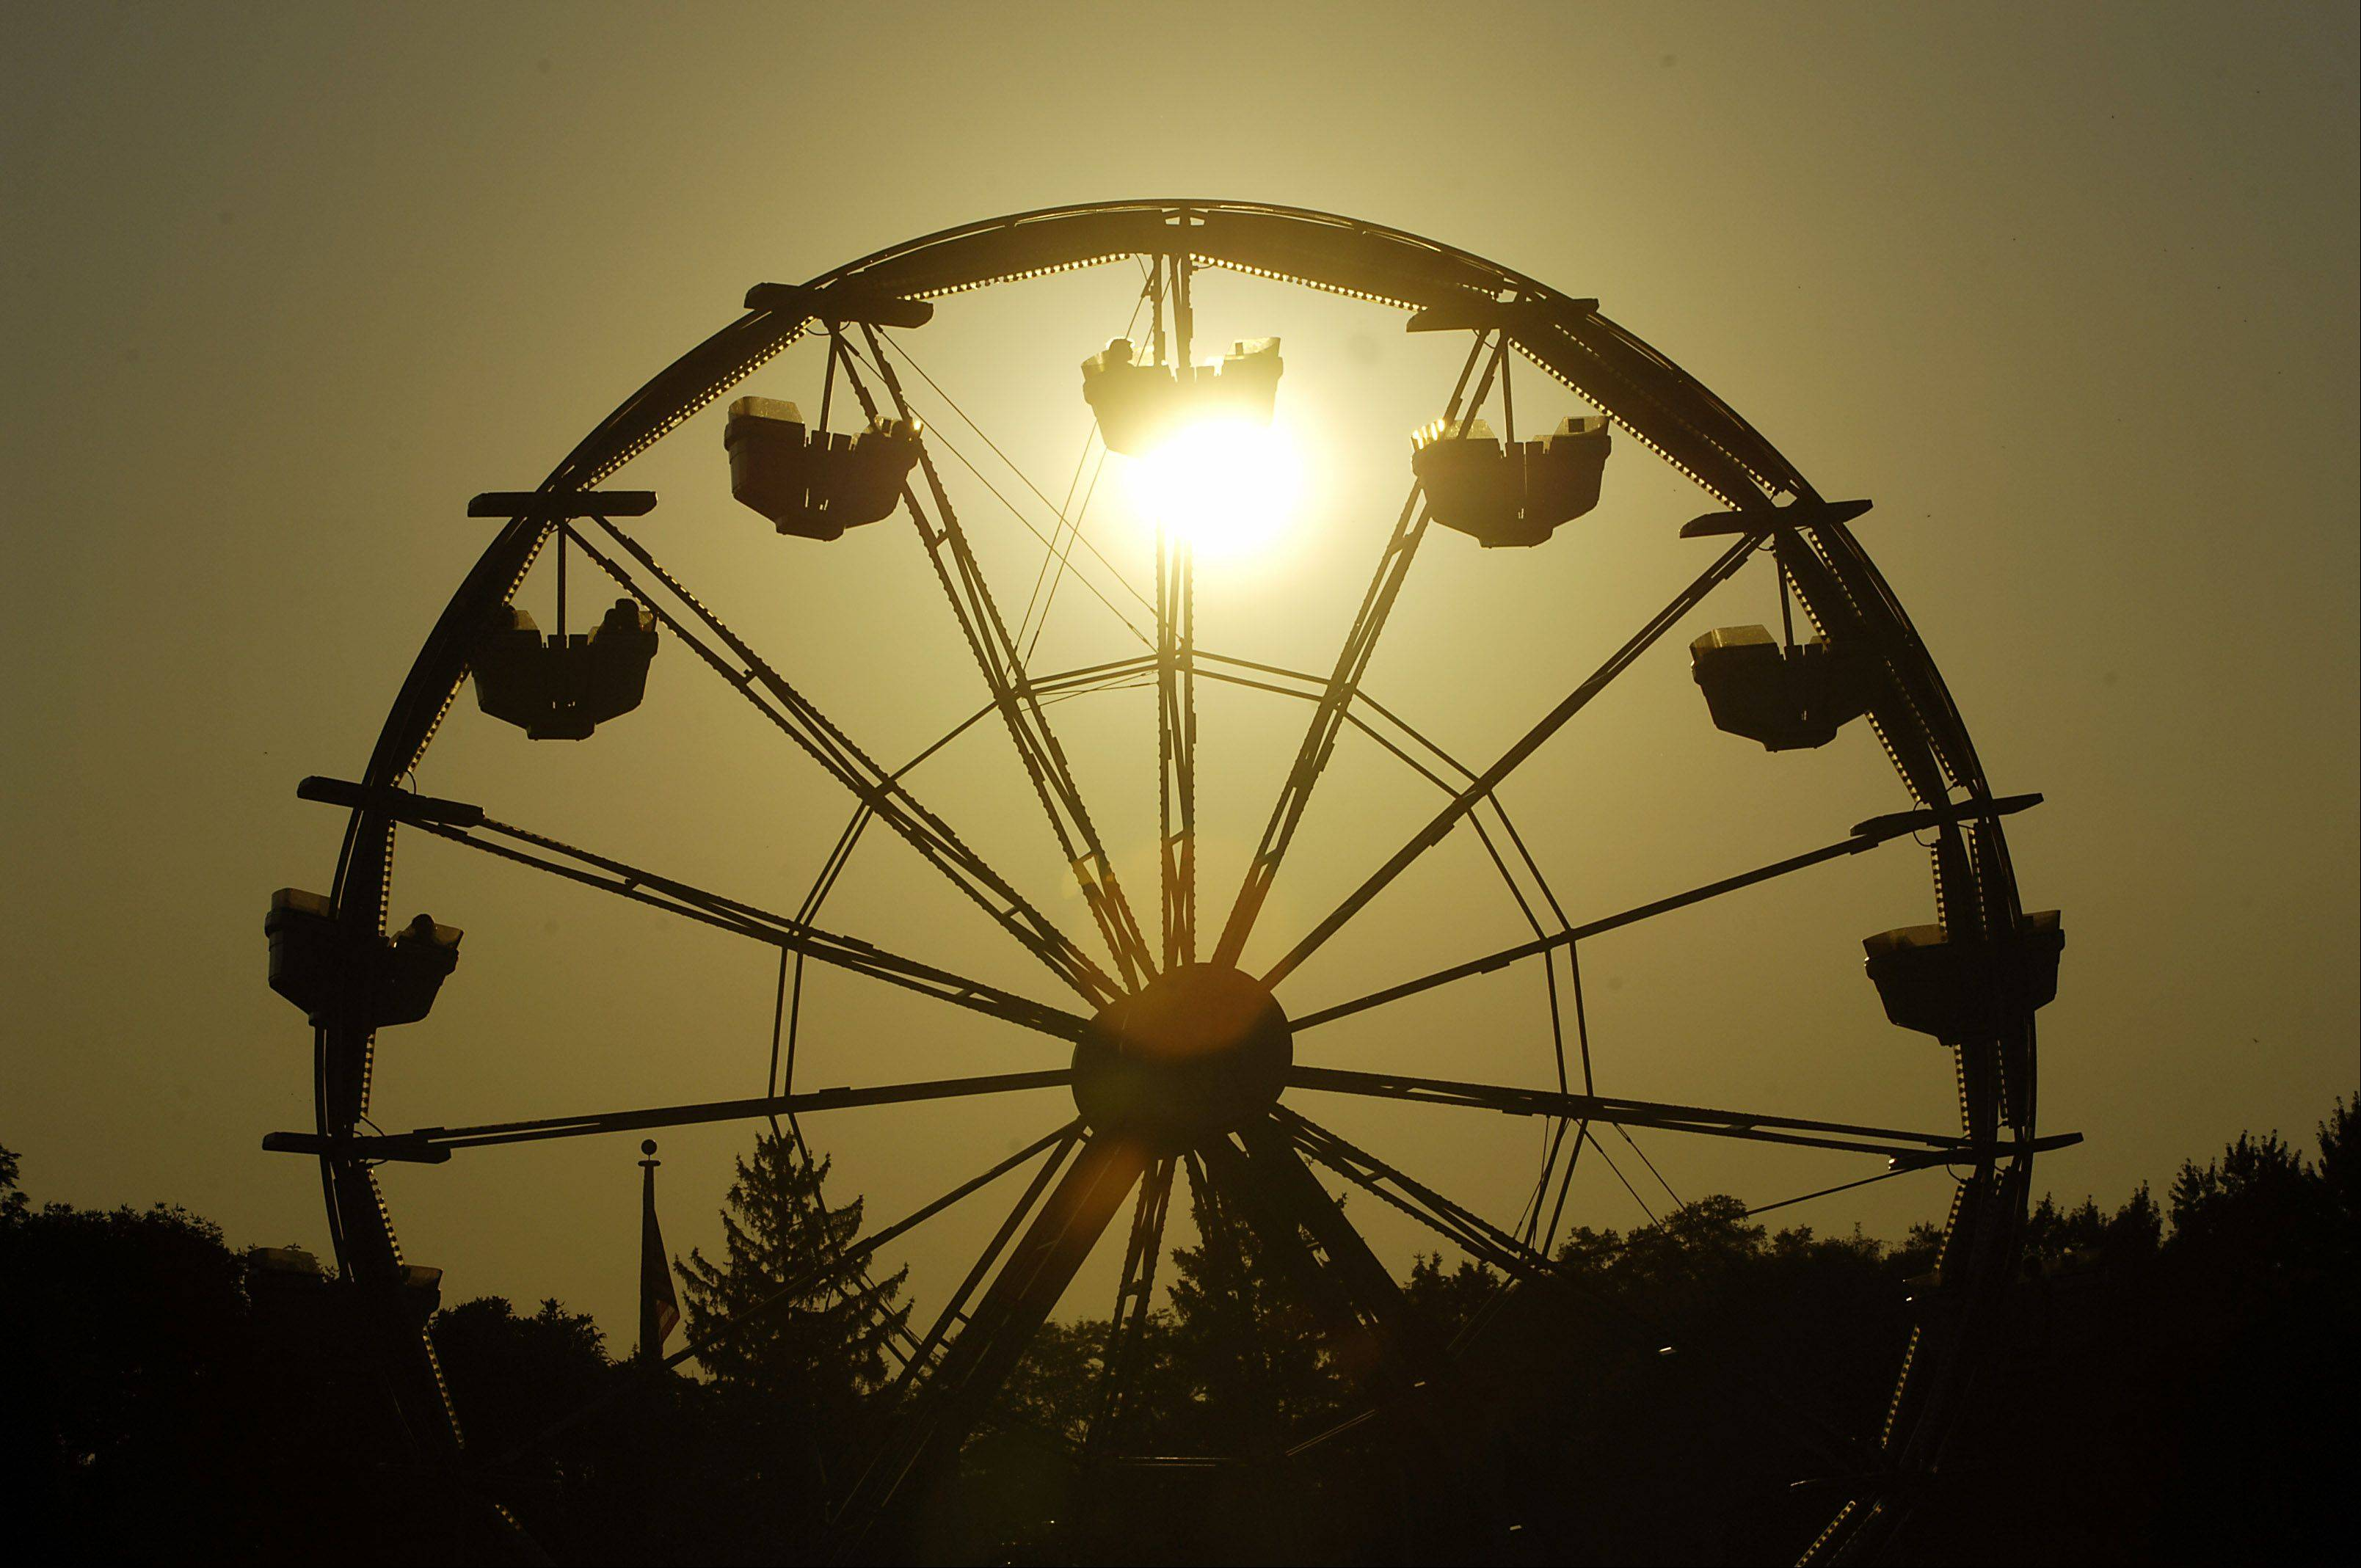 The sun sets on the opening night of South Elgin's RiverFest Express. This year, the festival runs Thursday, Aug. 15, through Sunday, Aug. 18, at Panton Mill Park.